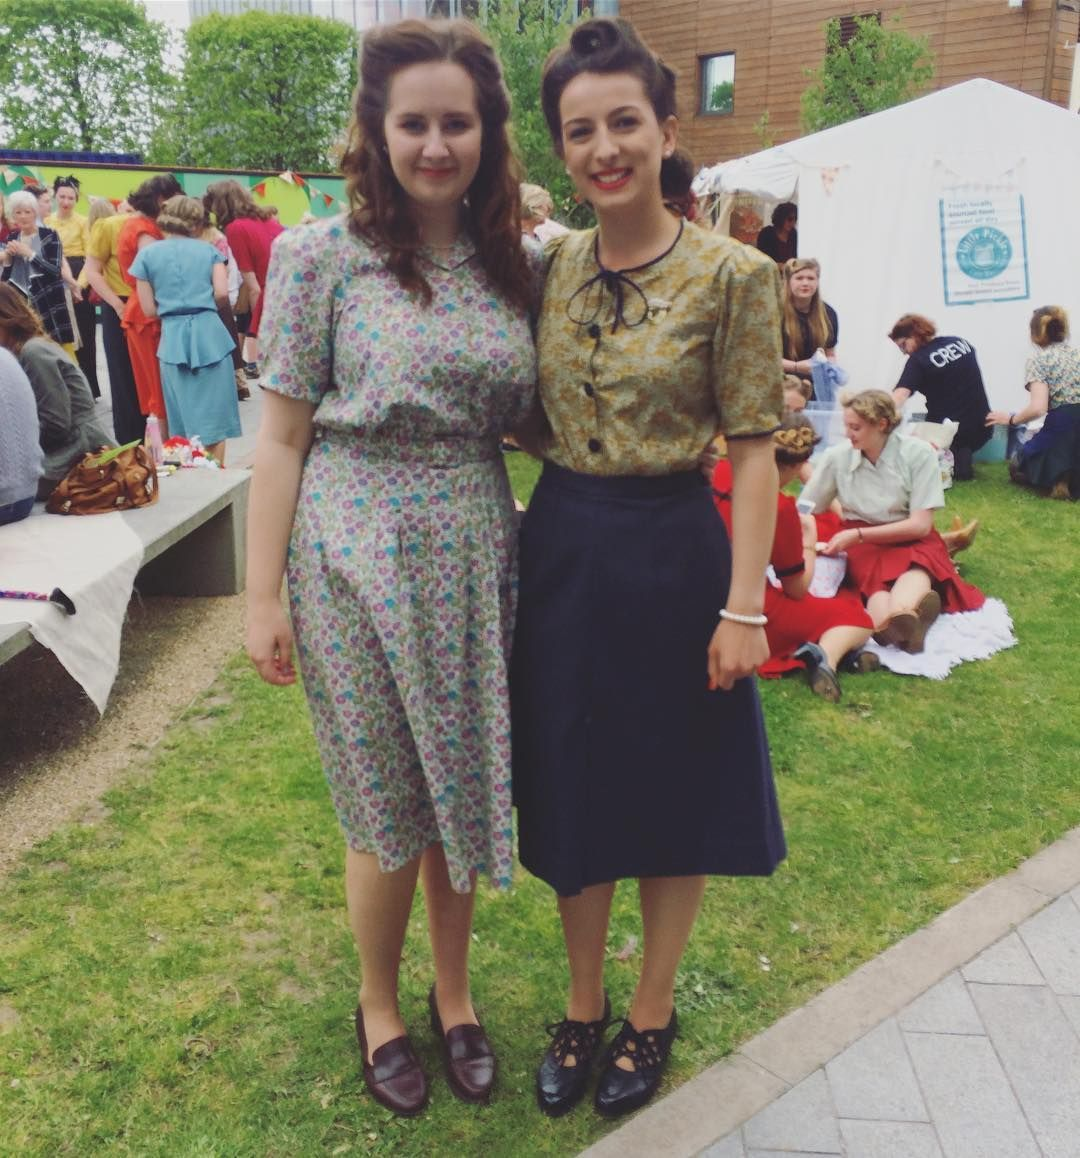 df1ec598a4c2d Throwback to our first year 1940s Jambusters flash mob. The 1940s utility  dress I made on the left modelled with full period hair makeup and  accessories by ...